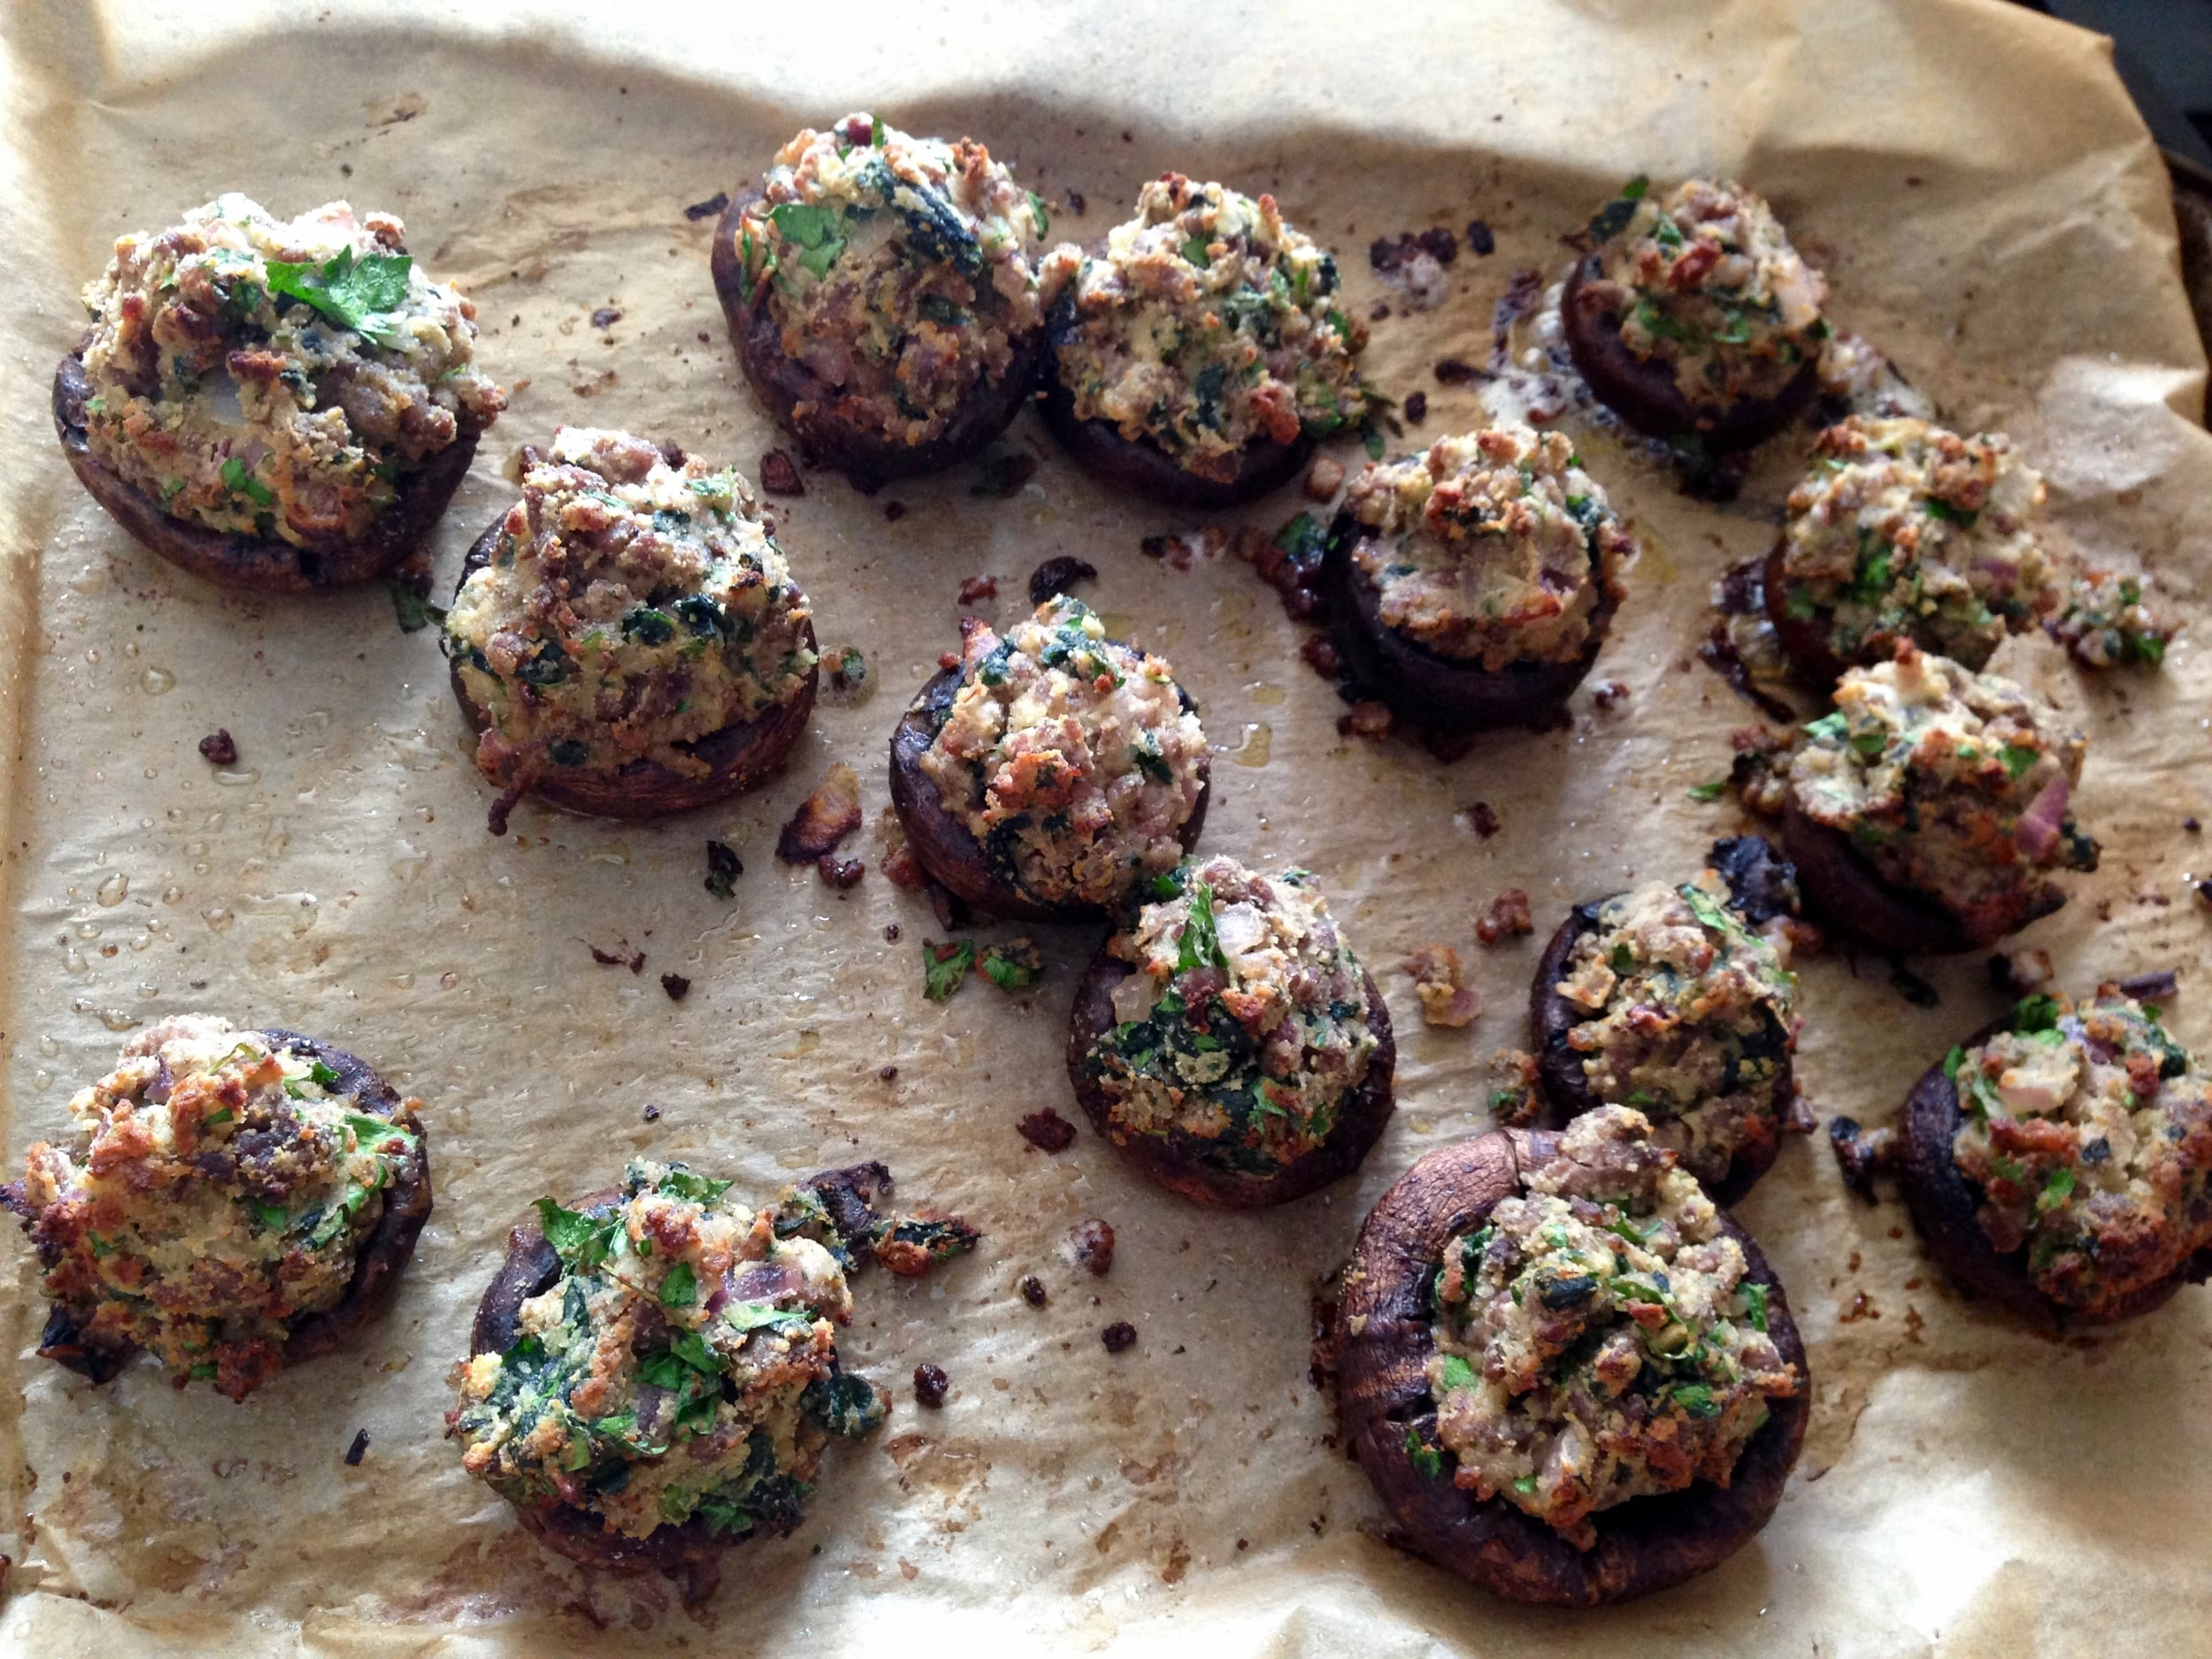 These stuffed mushroom caps made a wonderful app, snack, or (if you make them portobello mushrooms) entree!